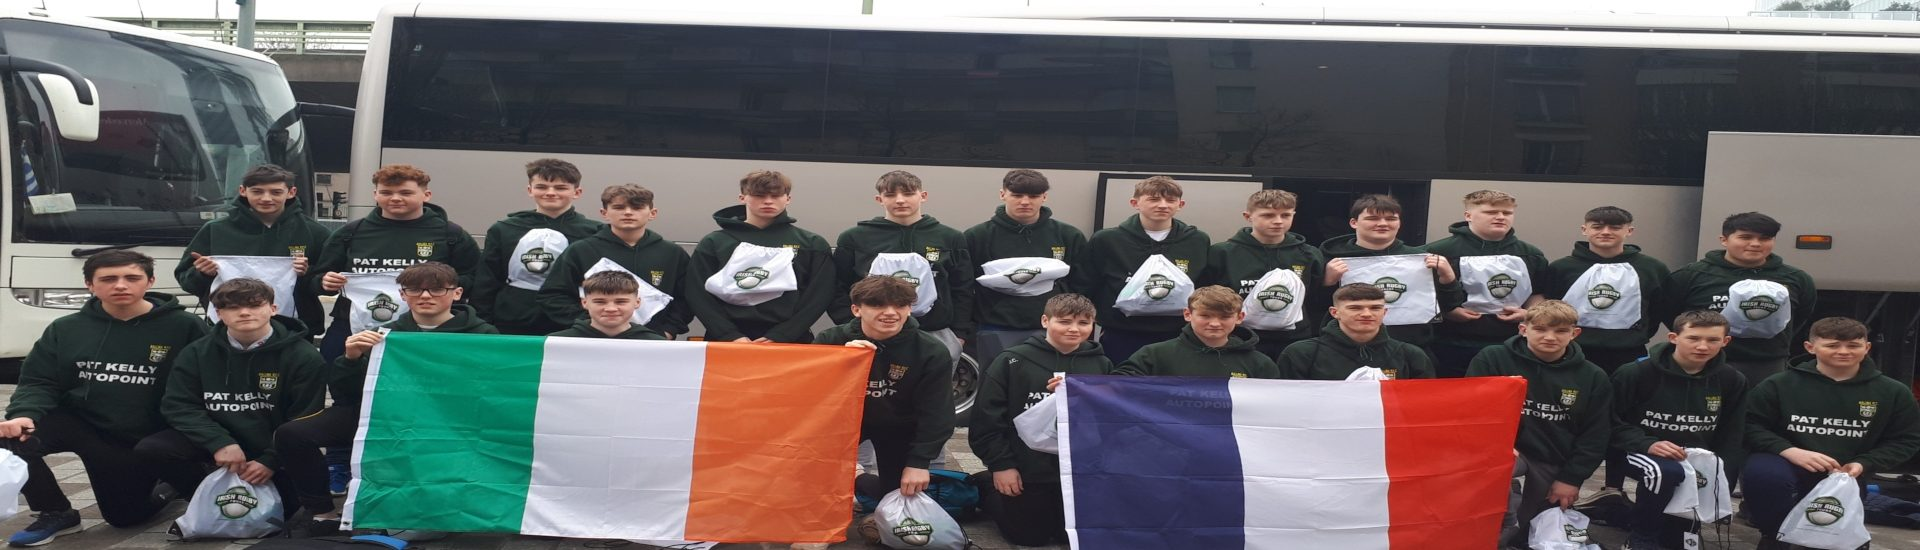 Ballina RFC U15s - Rugby Tours To Paris, Rugby Toursa To France, Irish Rugby Tours